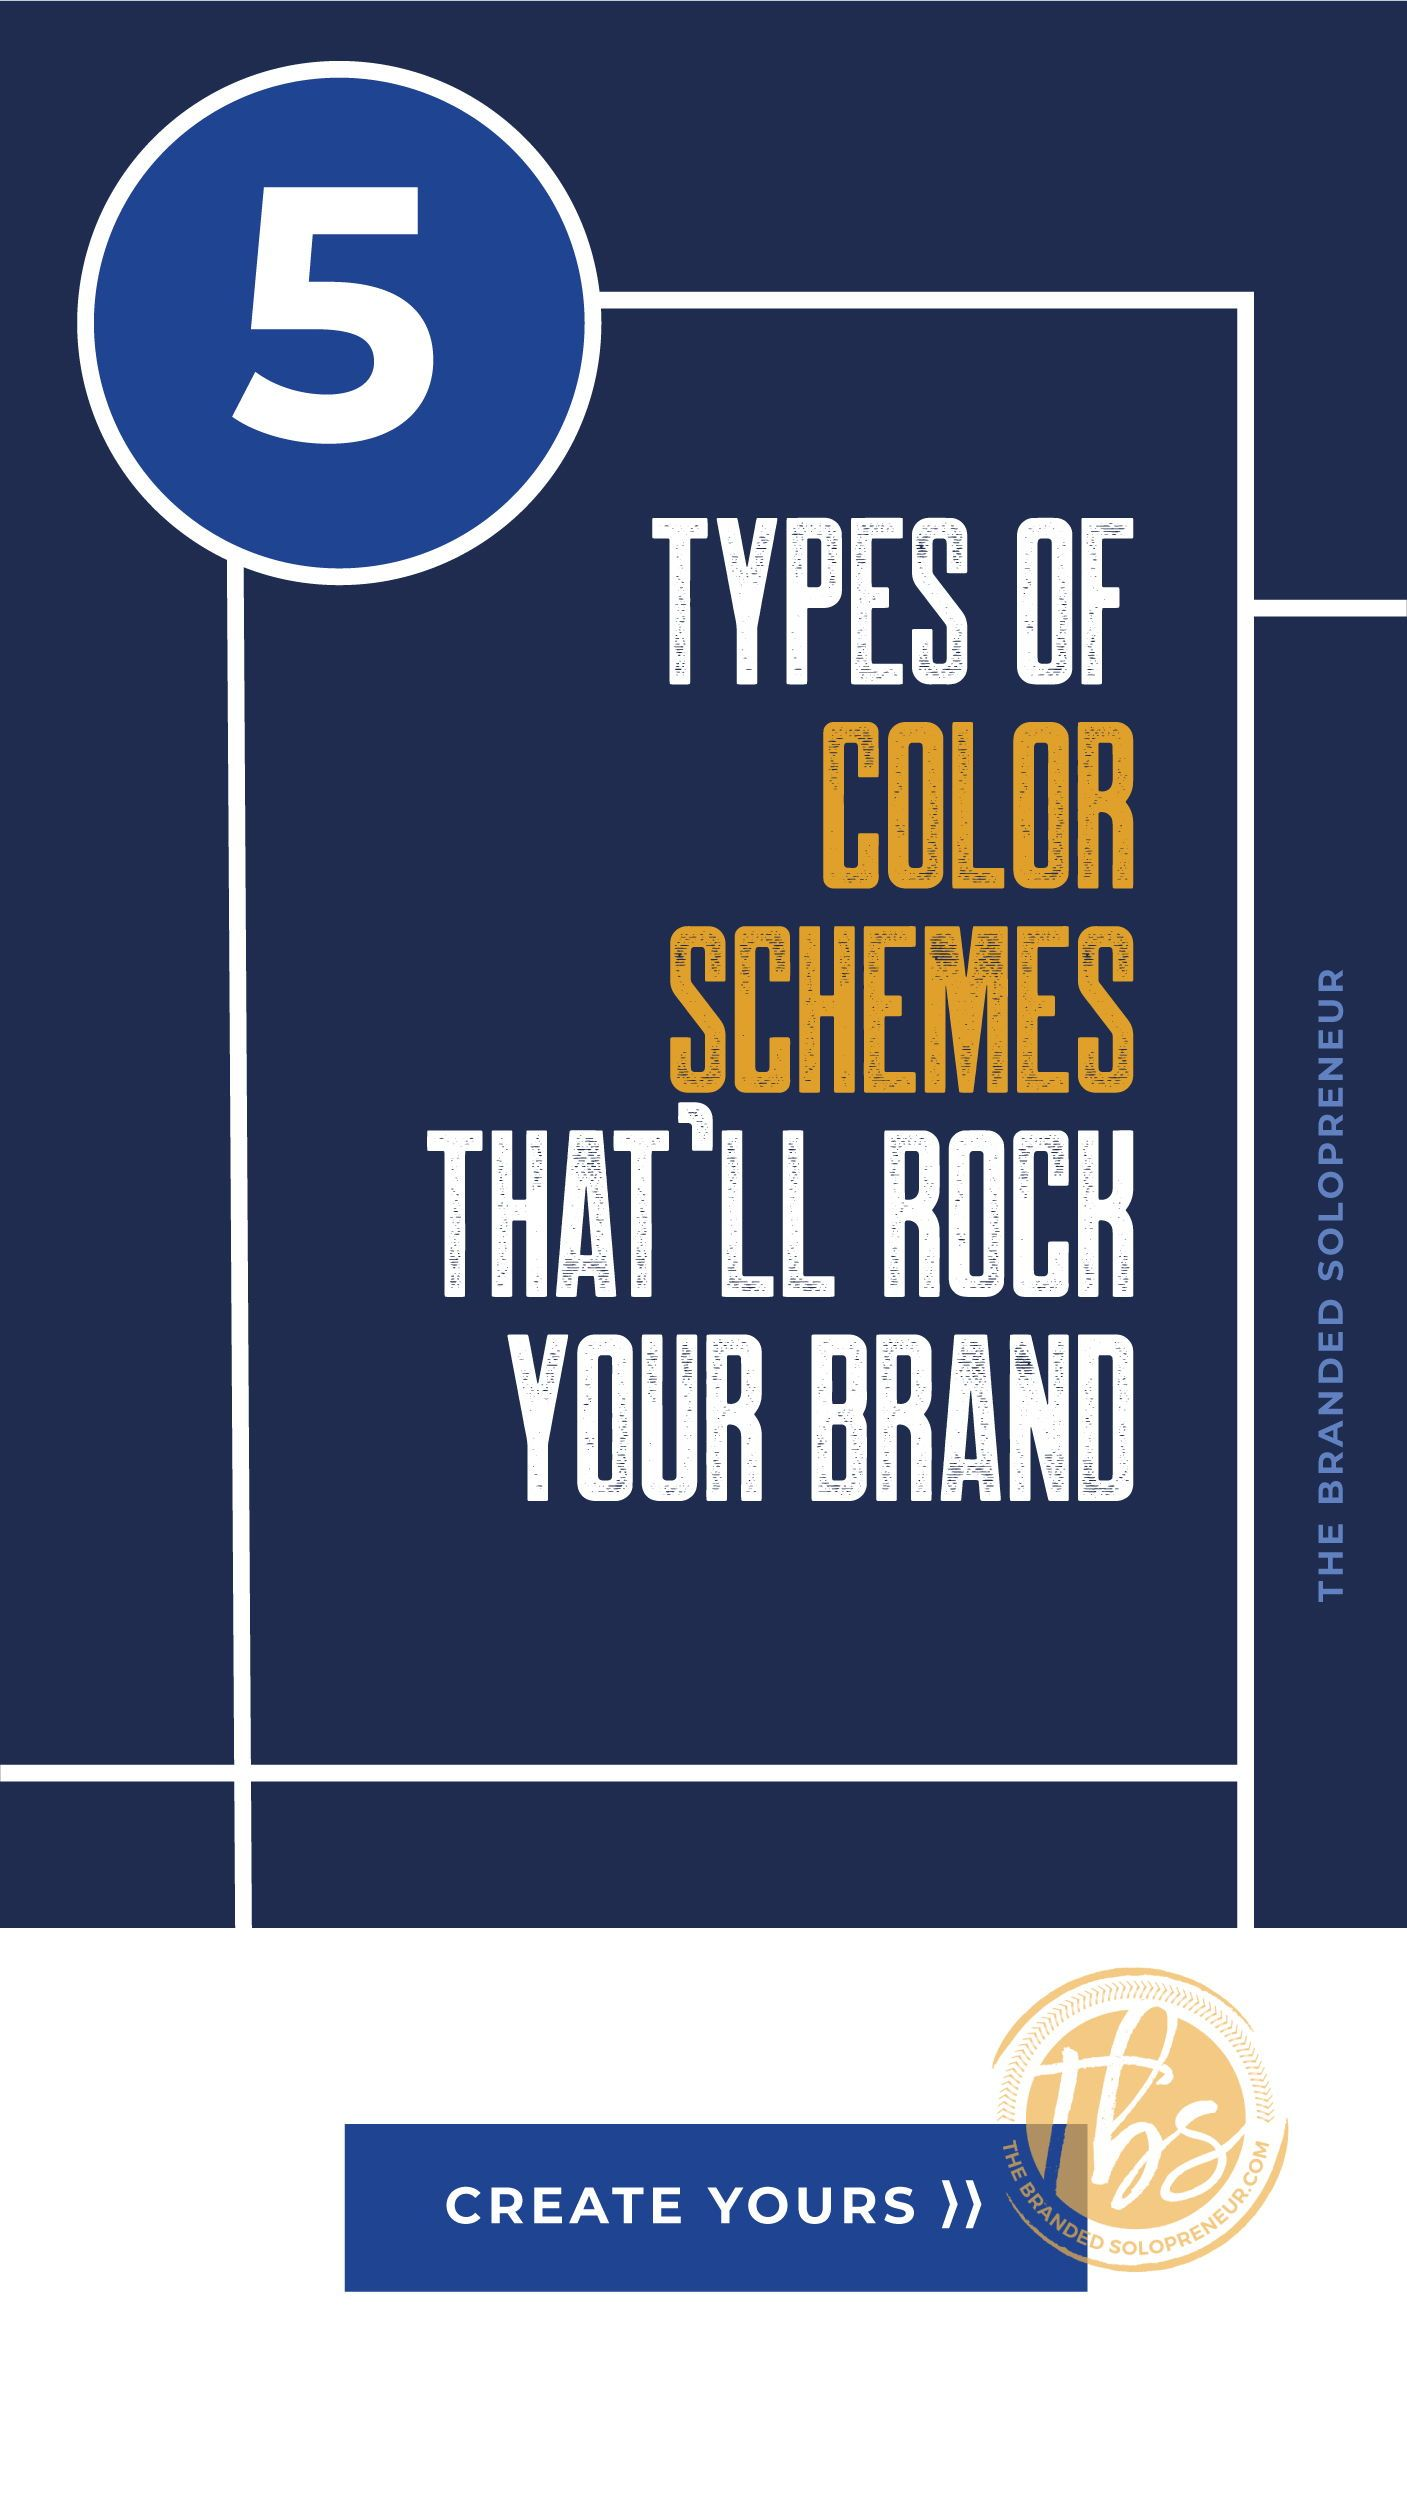 5 Types of Branding Color Palettes That Reign Supreme is part of Branding, Brand colour schemes, Brand color palette, Branding design, Business colors, Brand colors - When it comes to branding color palettes not all colors are created equal  In fact, there are only 5 types of palettes that reign supreme when it comes to creating a brand identity  Click to learn what those are + see tons of real world examples